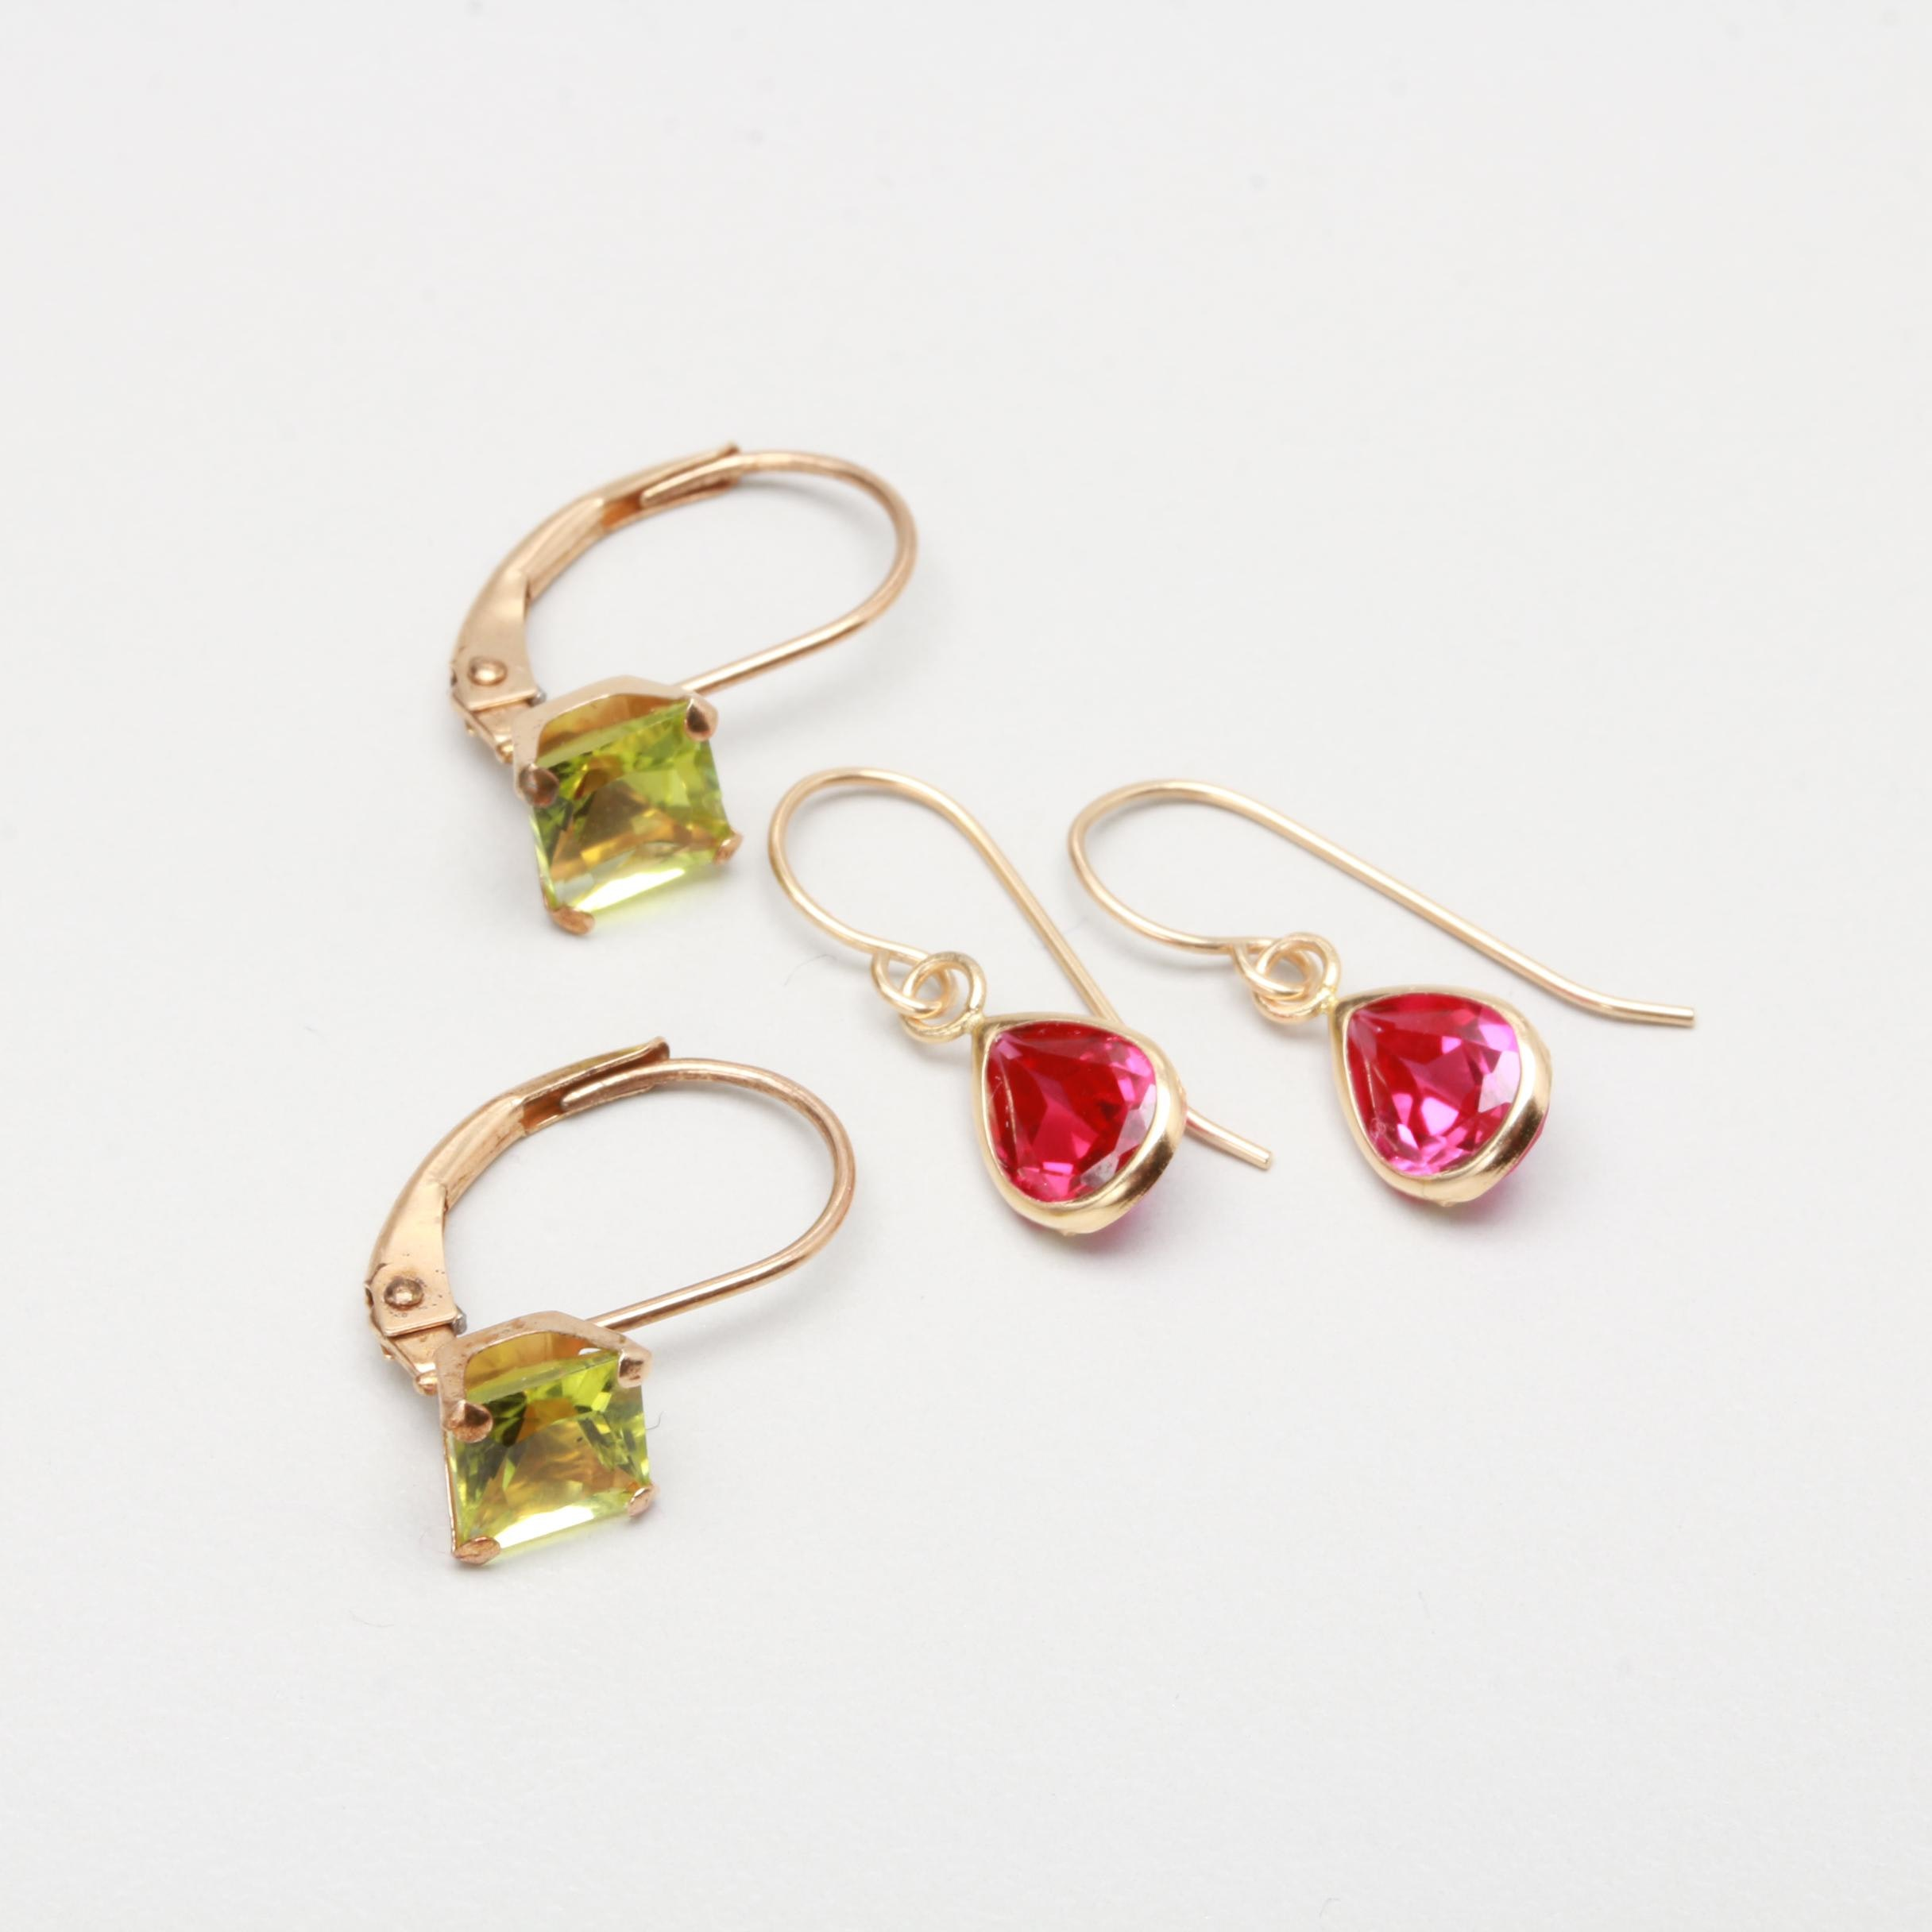 10K Yellow Gold Peridot and Synthetic Ruby Earrings